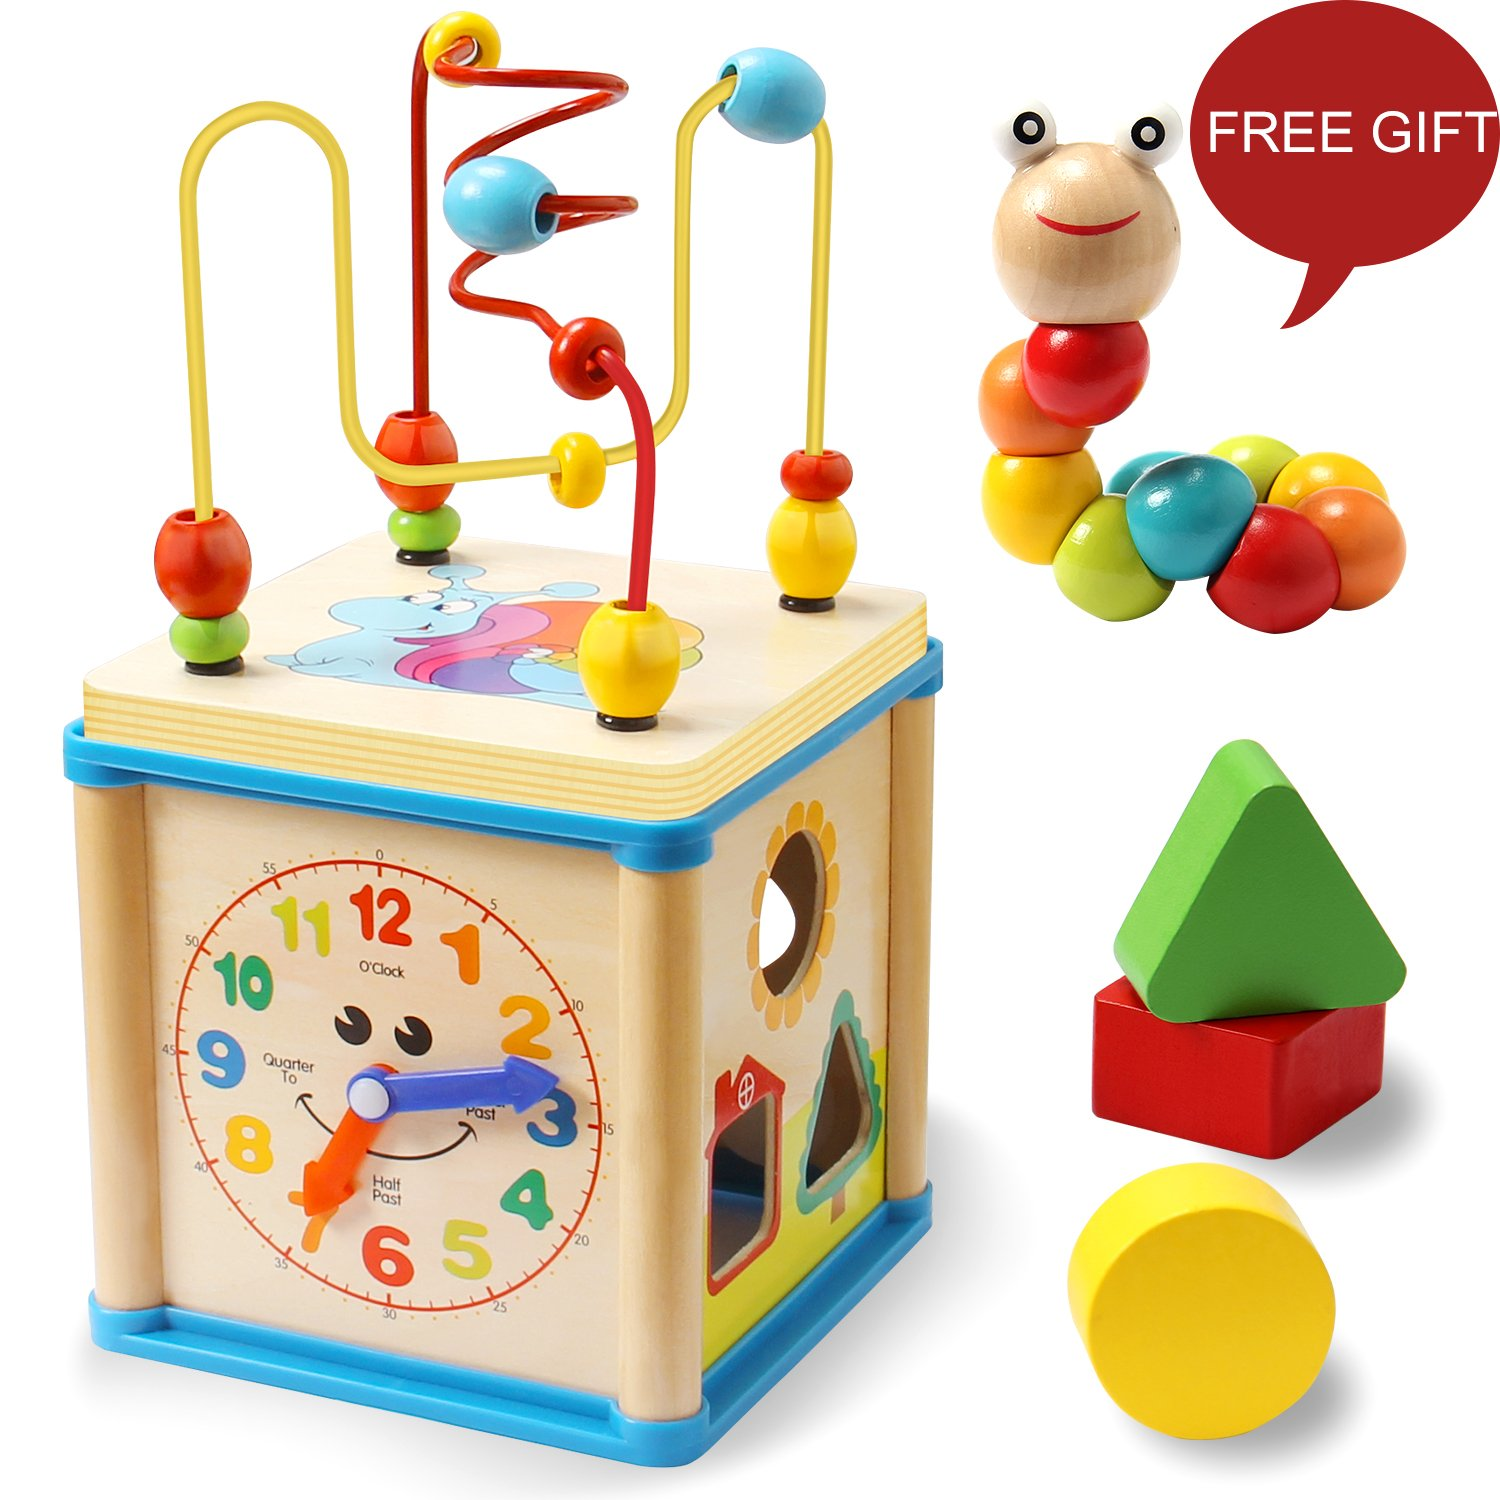 LuaLua Baby Toys for 1 2 3 Year Old Educational Wooden Bead Maze Shape Sorter Activity Cube Gifts for Boy And Girl Toddlers